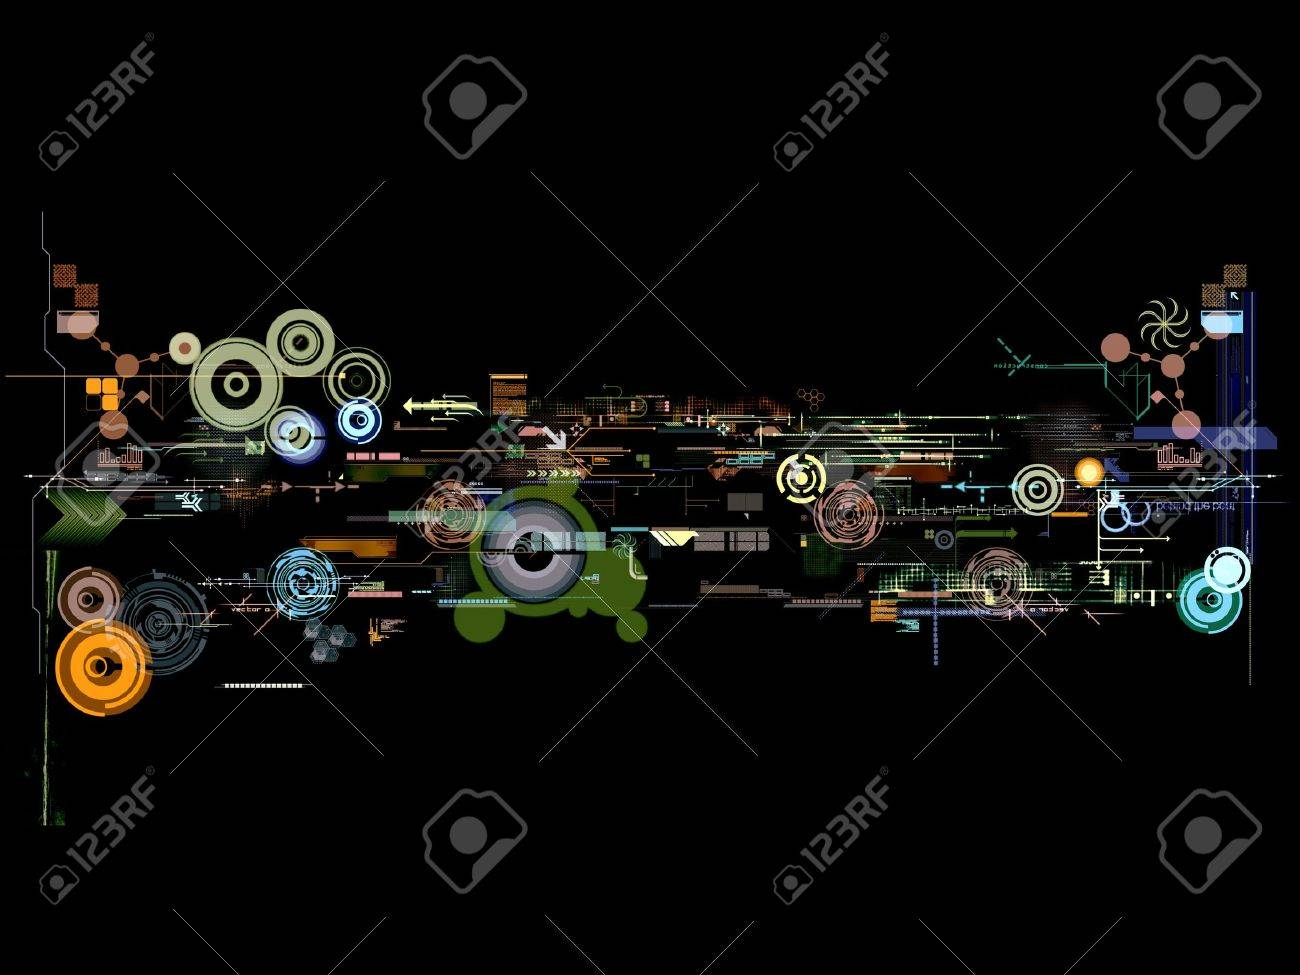 abstract graphic montage design wallpaper background poster Stock Photo - 727989